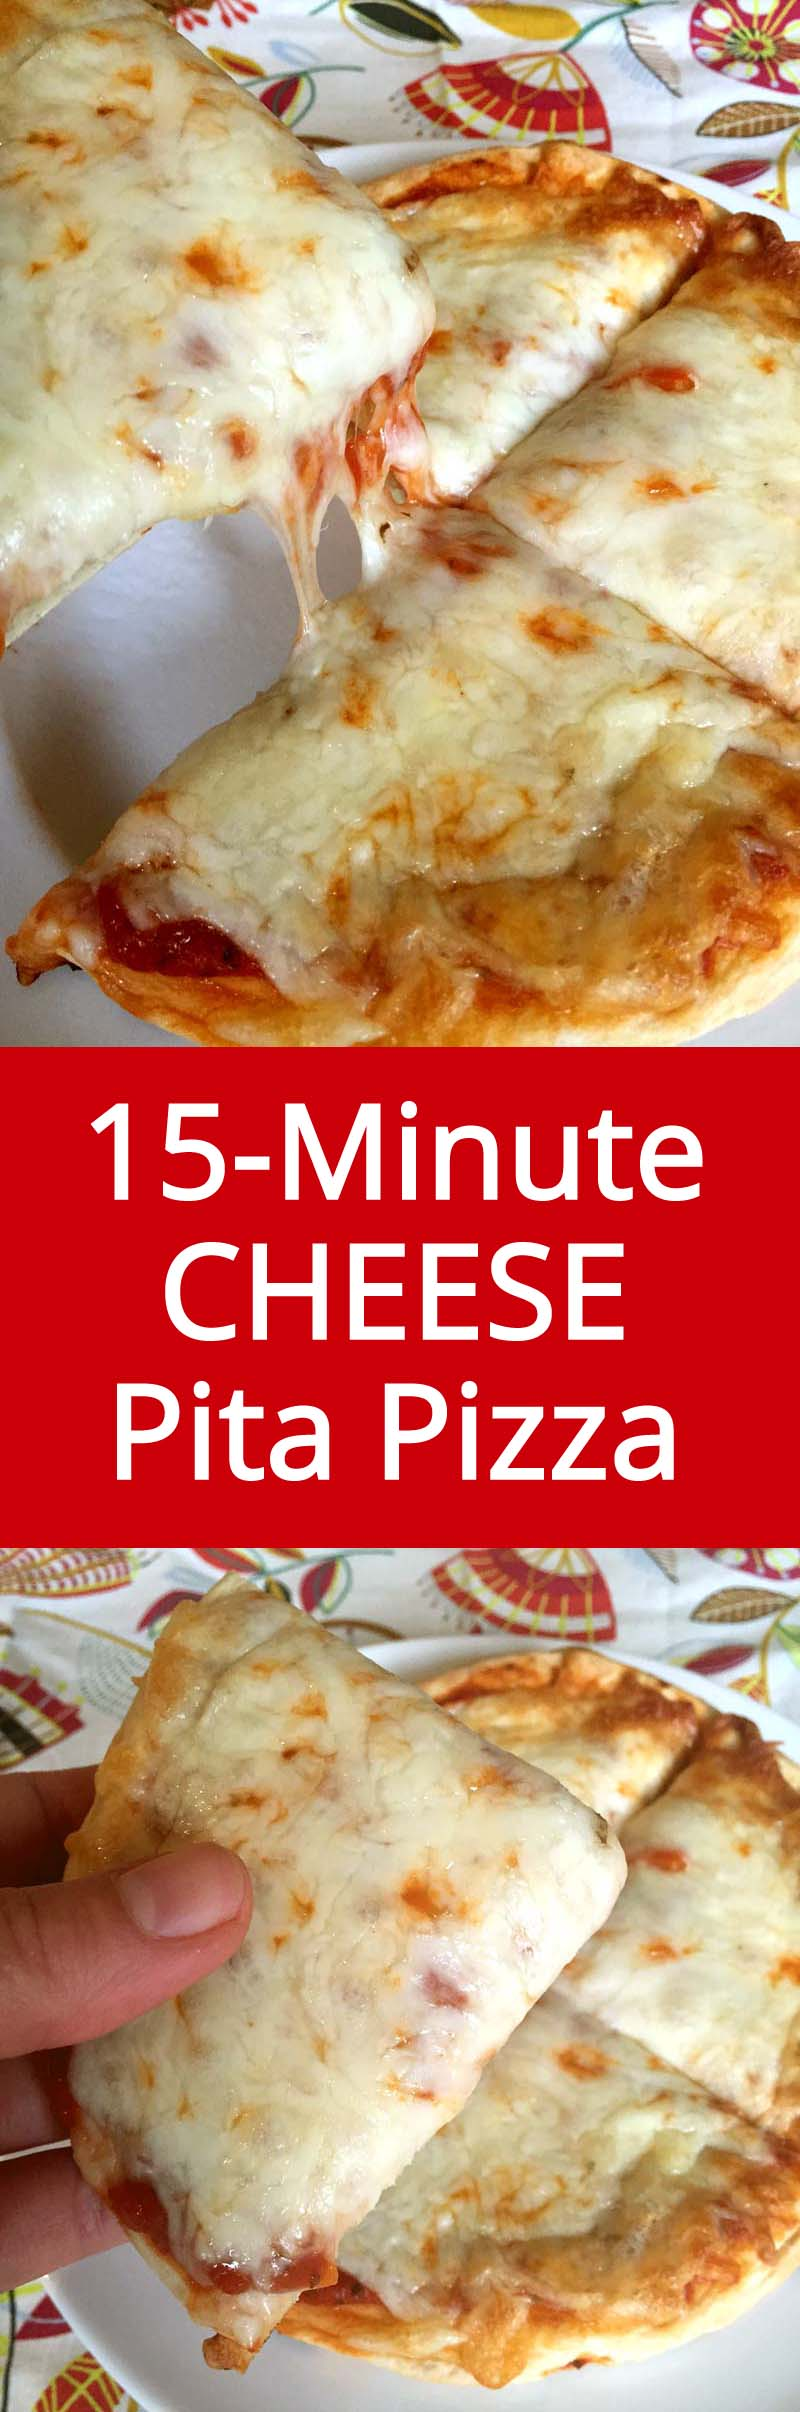 Easy 15-Minute Personal Cheese Pita Pizza Recipe - The Easiest Dinner Ever! | MelanieCooks.com